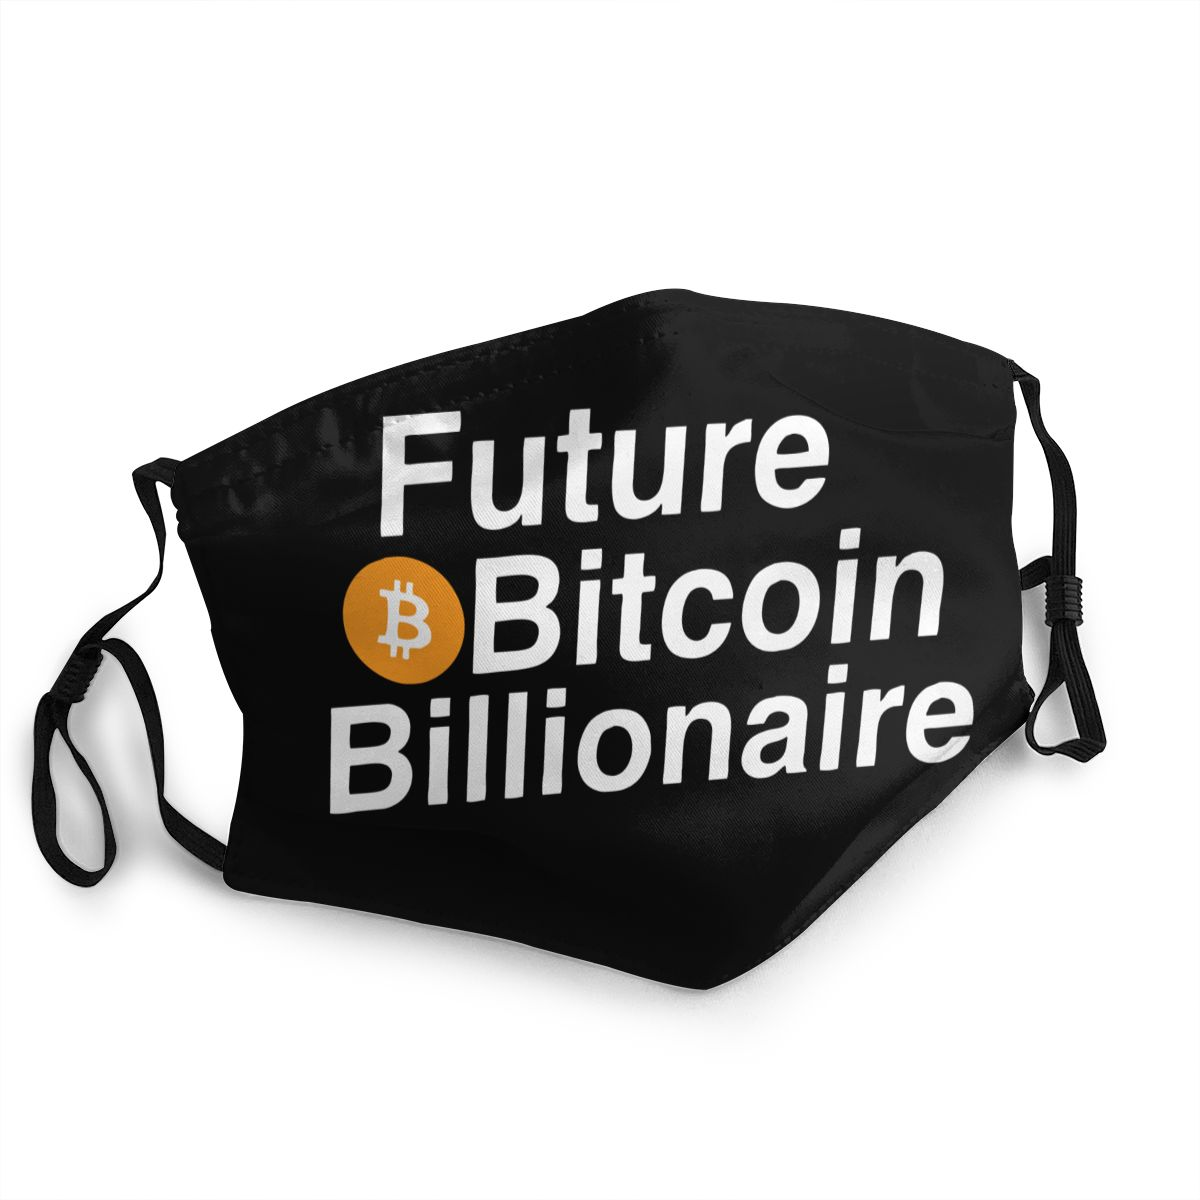 Bitcoin Billionaire Cryptocurrency Reusable Mouth Face Mask Anti Bacterial Dustproof Mask Protection Cover Respirator Muffle